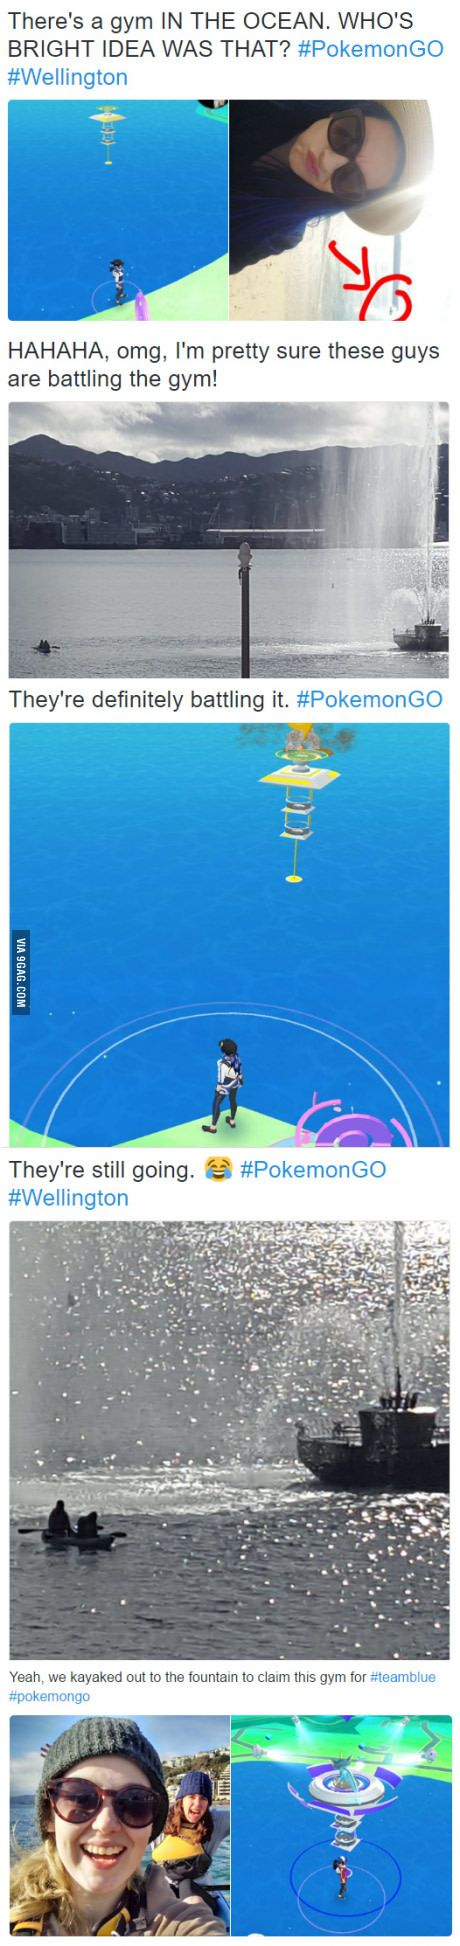 Someone livetweeted our kayak trip out to battle a gym in the harbour [Pokemon GO]